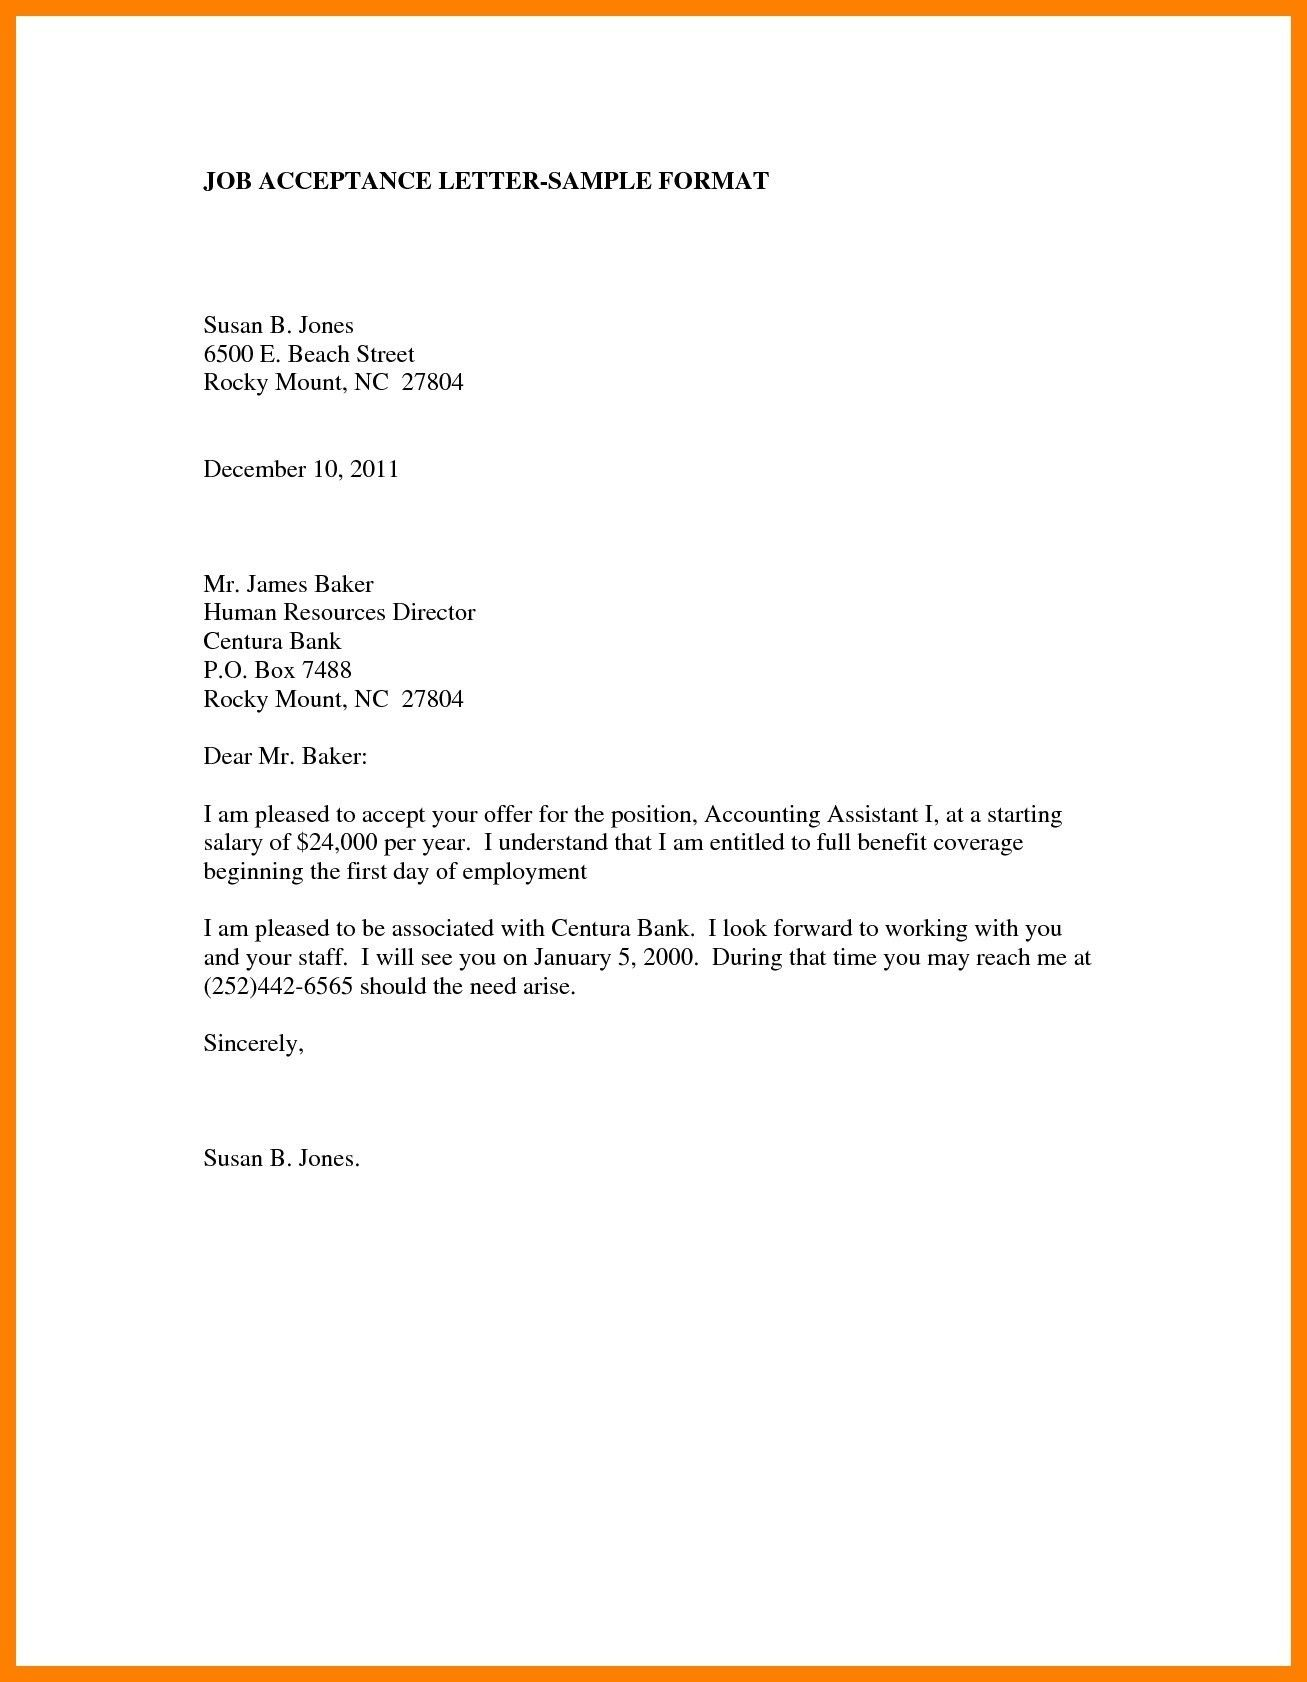 New Job Offer Acceptance Letter Example you can download